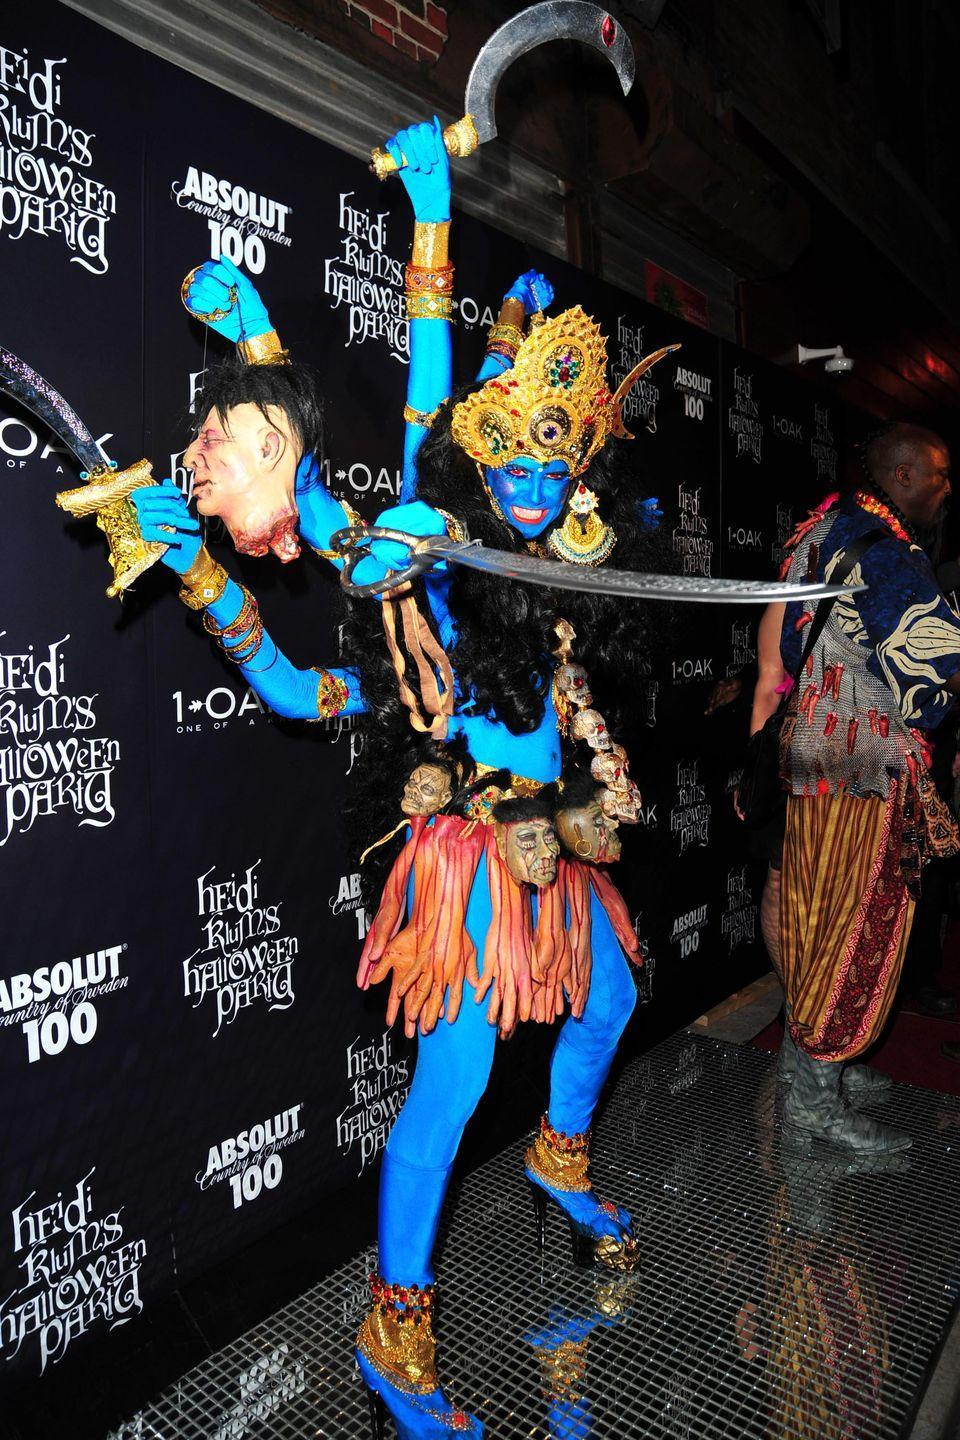 <p>She took a cultural shift in 2008 when she dressed as Kali, the Hindu goddess of death and time. This blue, multi-armed costume was a showstopper (and still is TBH).</p>